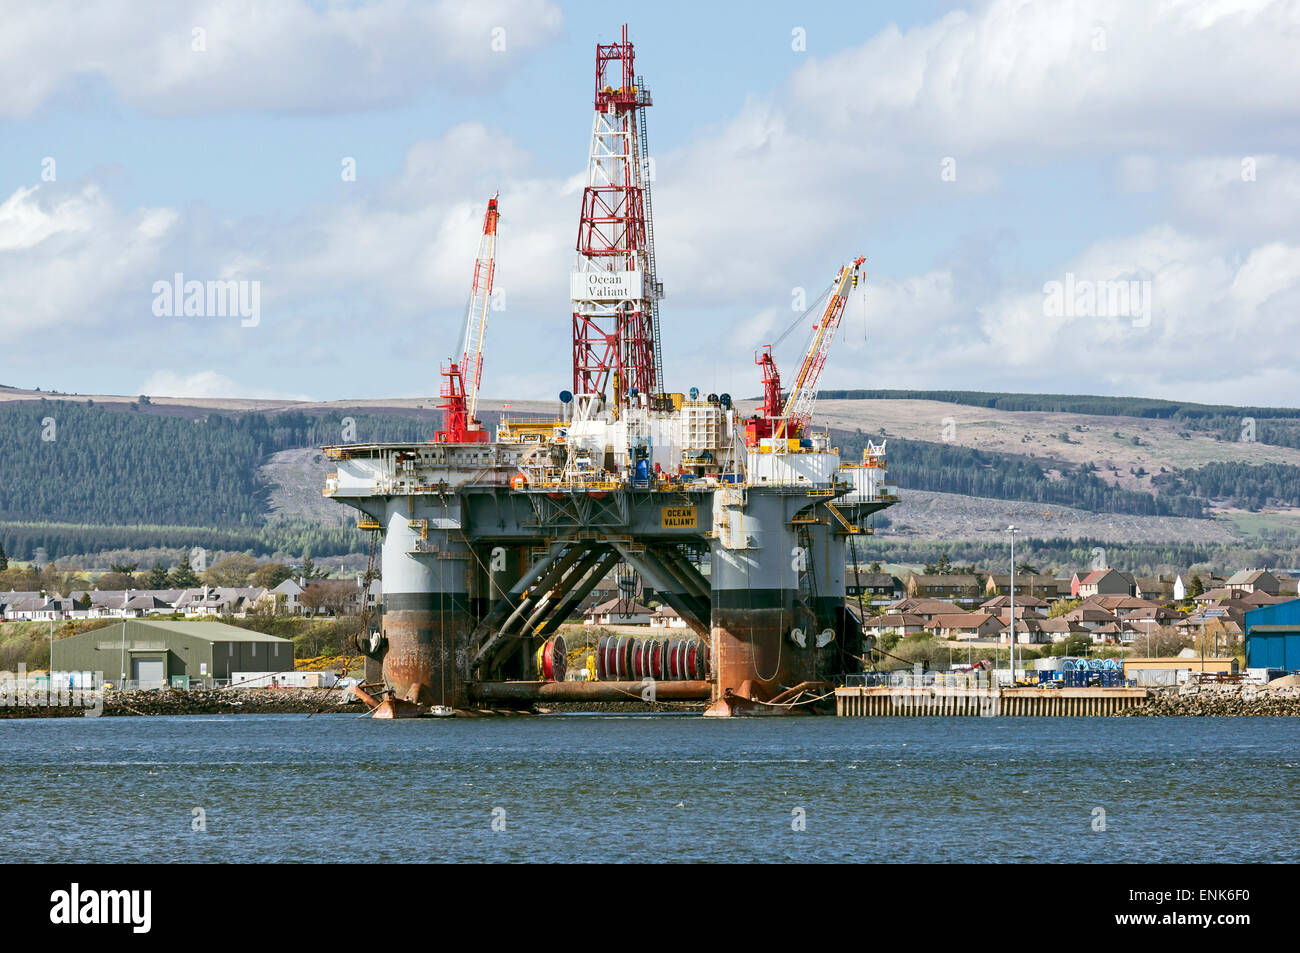 Oil drilling Rig Ocean Valiant anchored in the Cromarty Firth at the Black Isle Highland Scotland - Stock Image